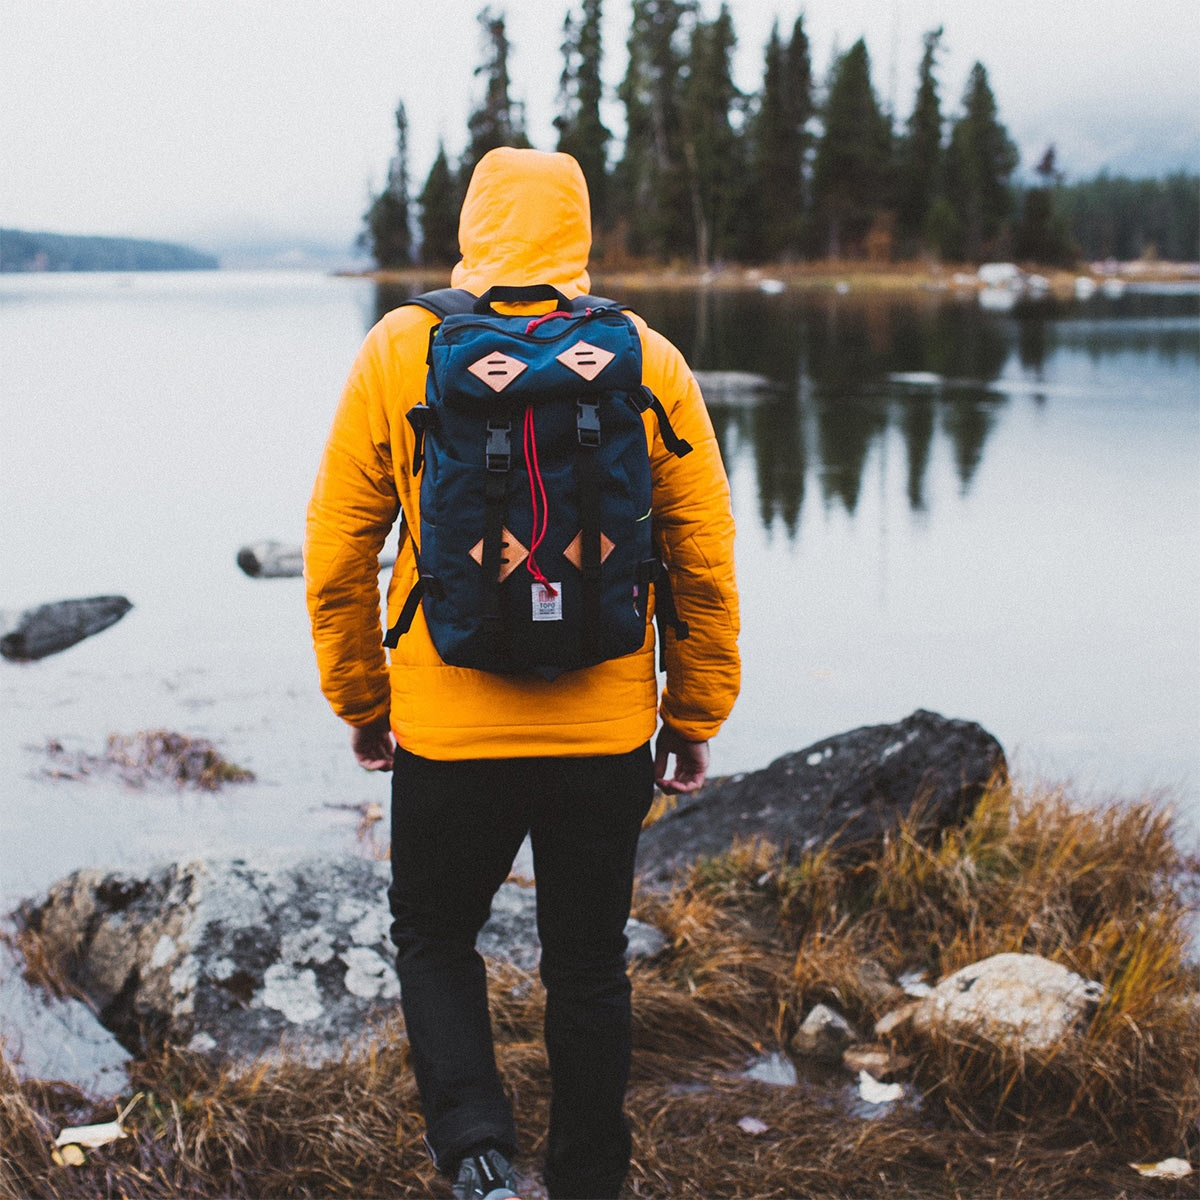 Topo Designs Klettersack Navy Lifestyle, classic backpack for men and women